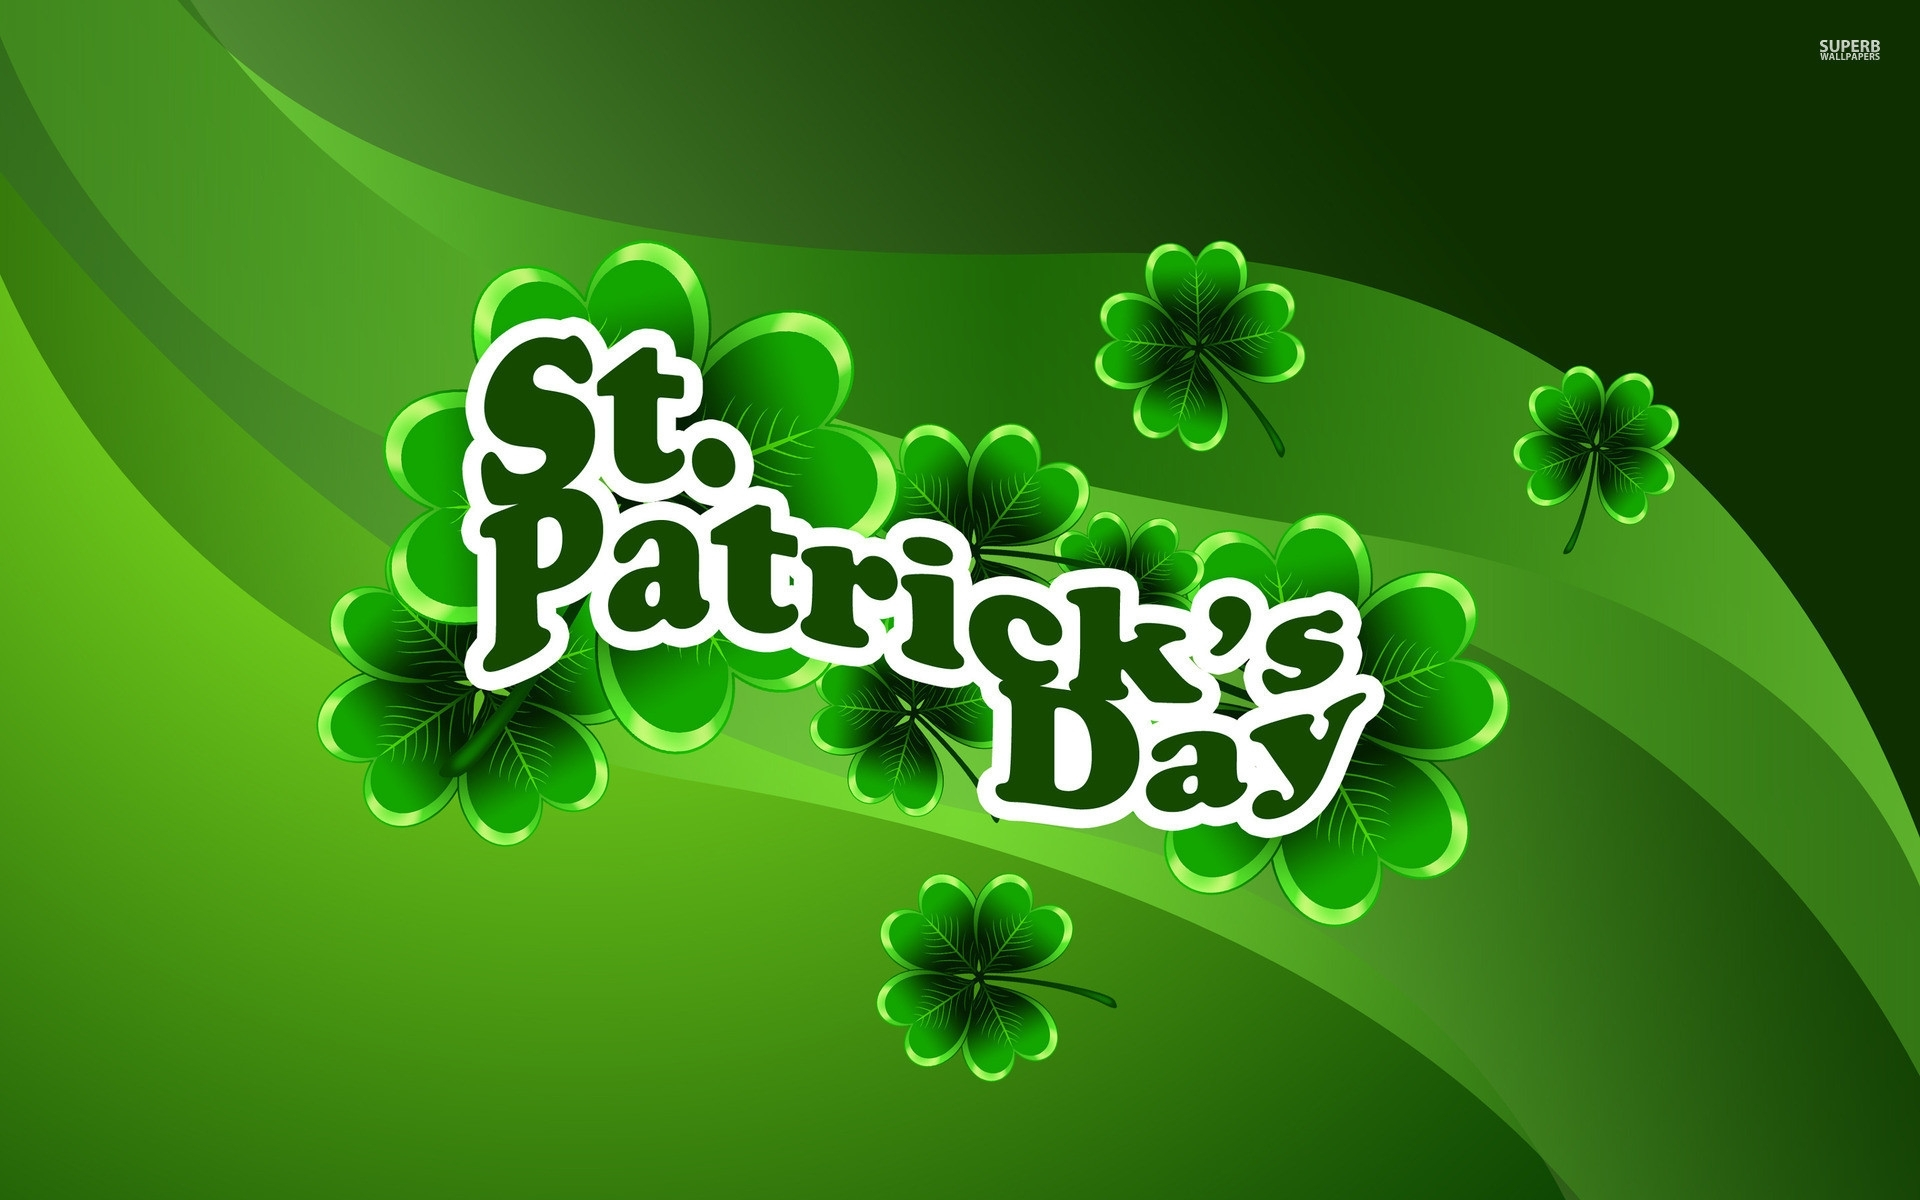 snoopy wallpaper st patricks day (43+ images)